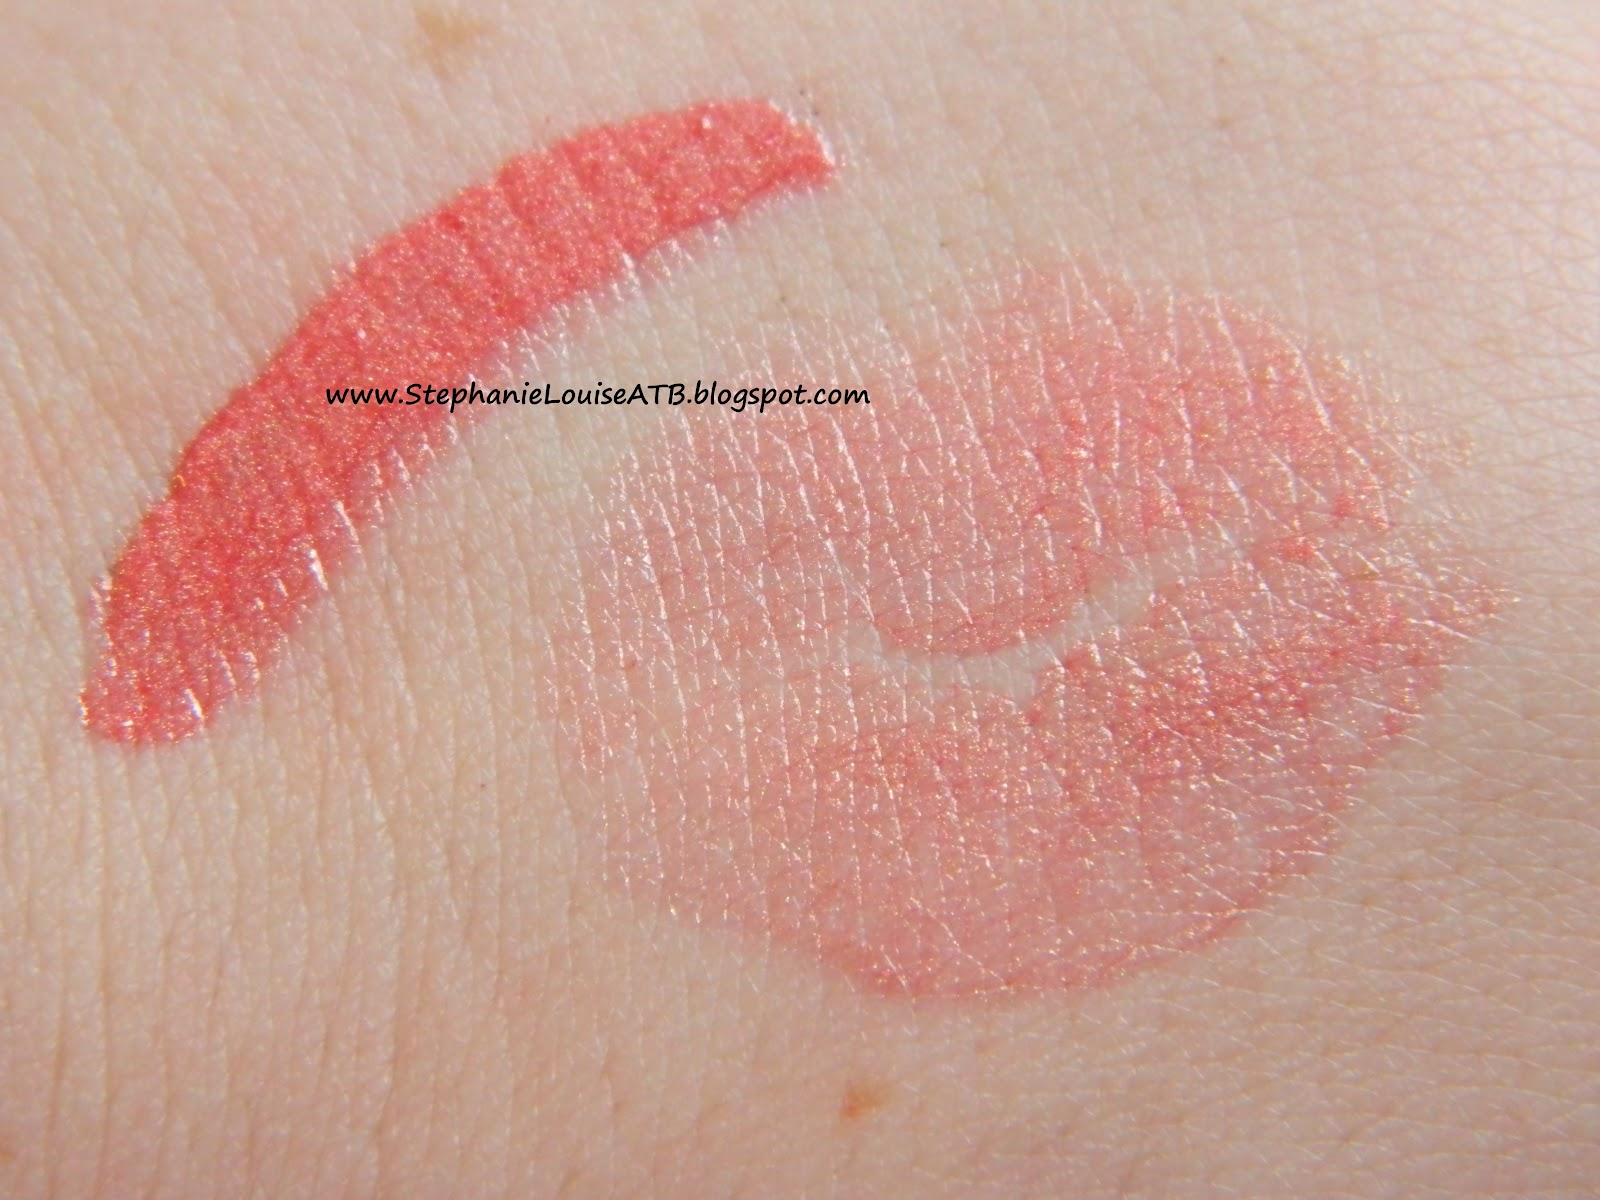 Plump Your Pucker Lip Gloss by theBalm #10